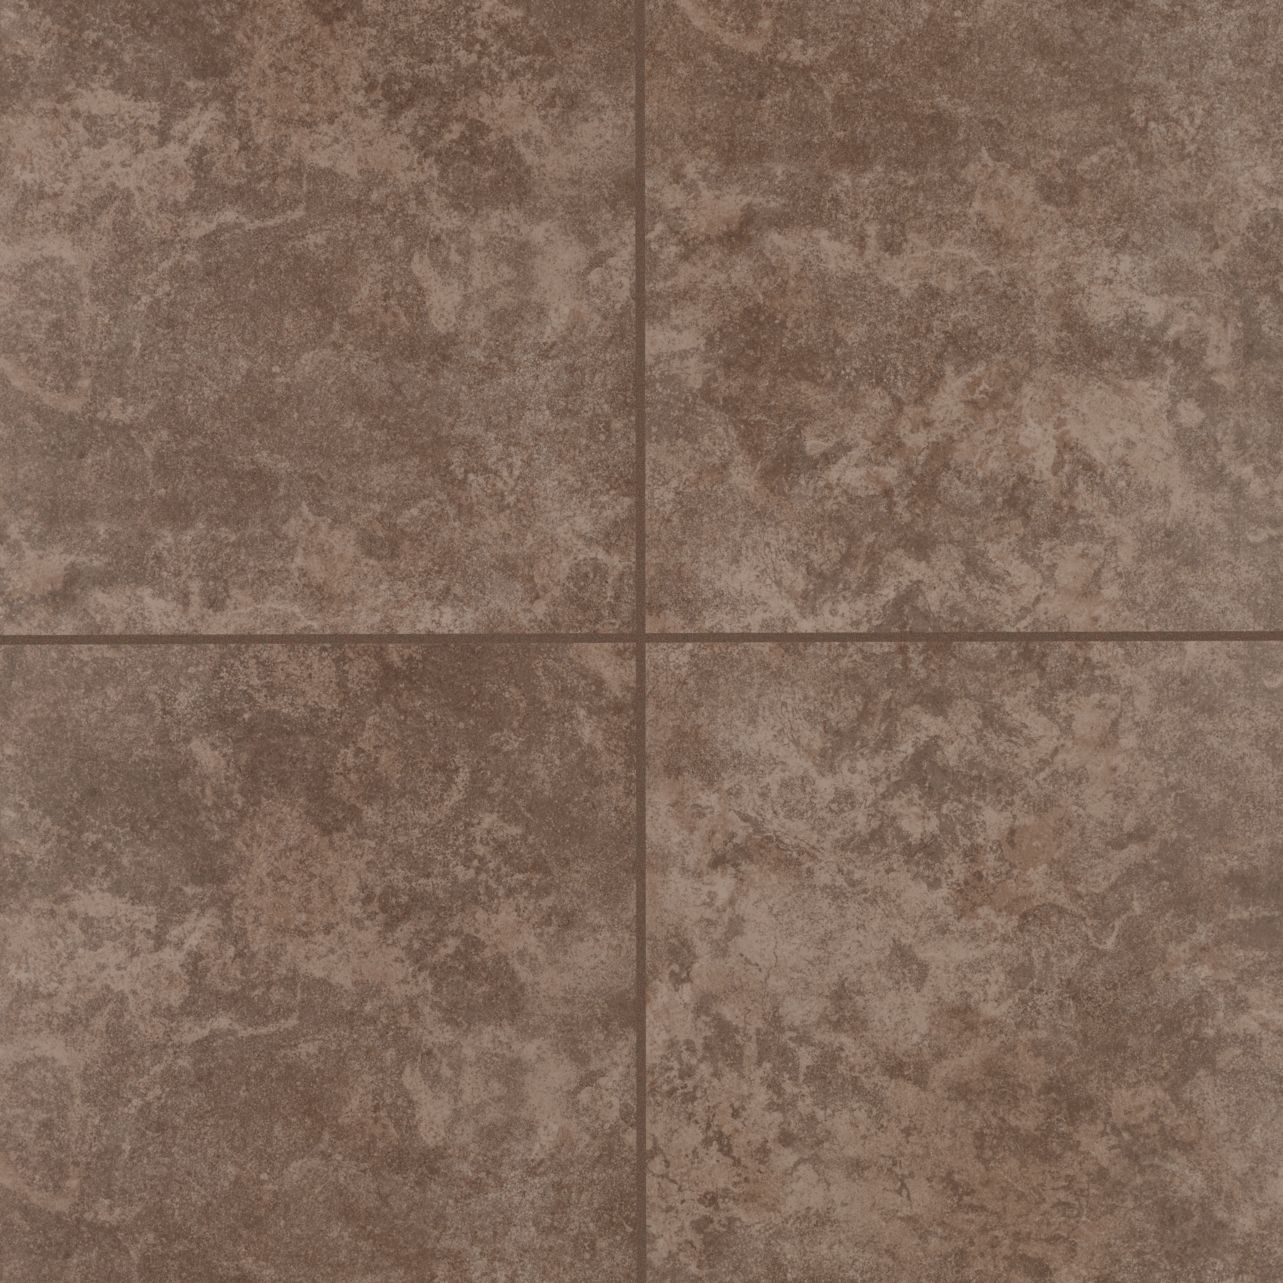 CeramicPorcelainTile Astello Floor Brown  thumbnail #1